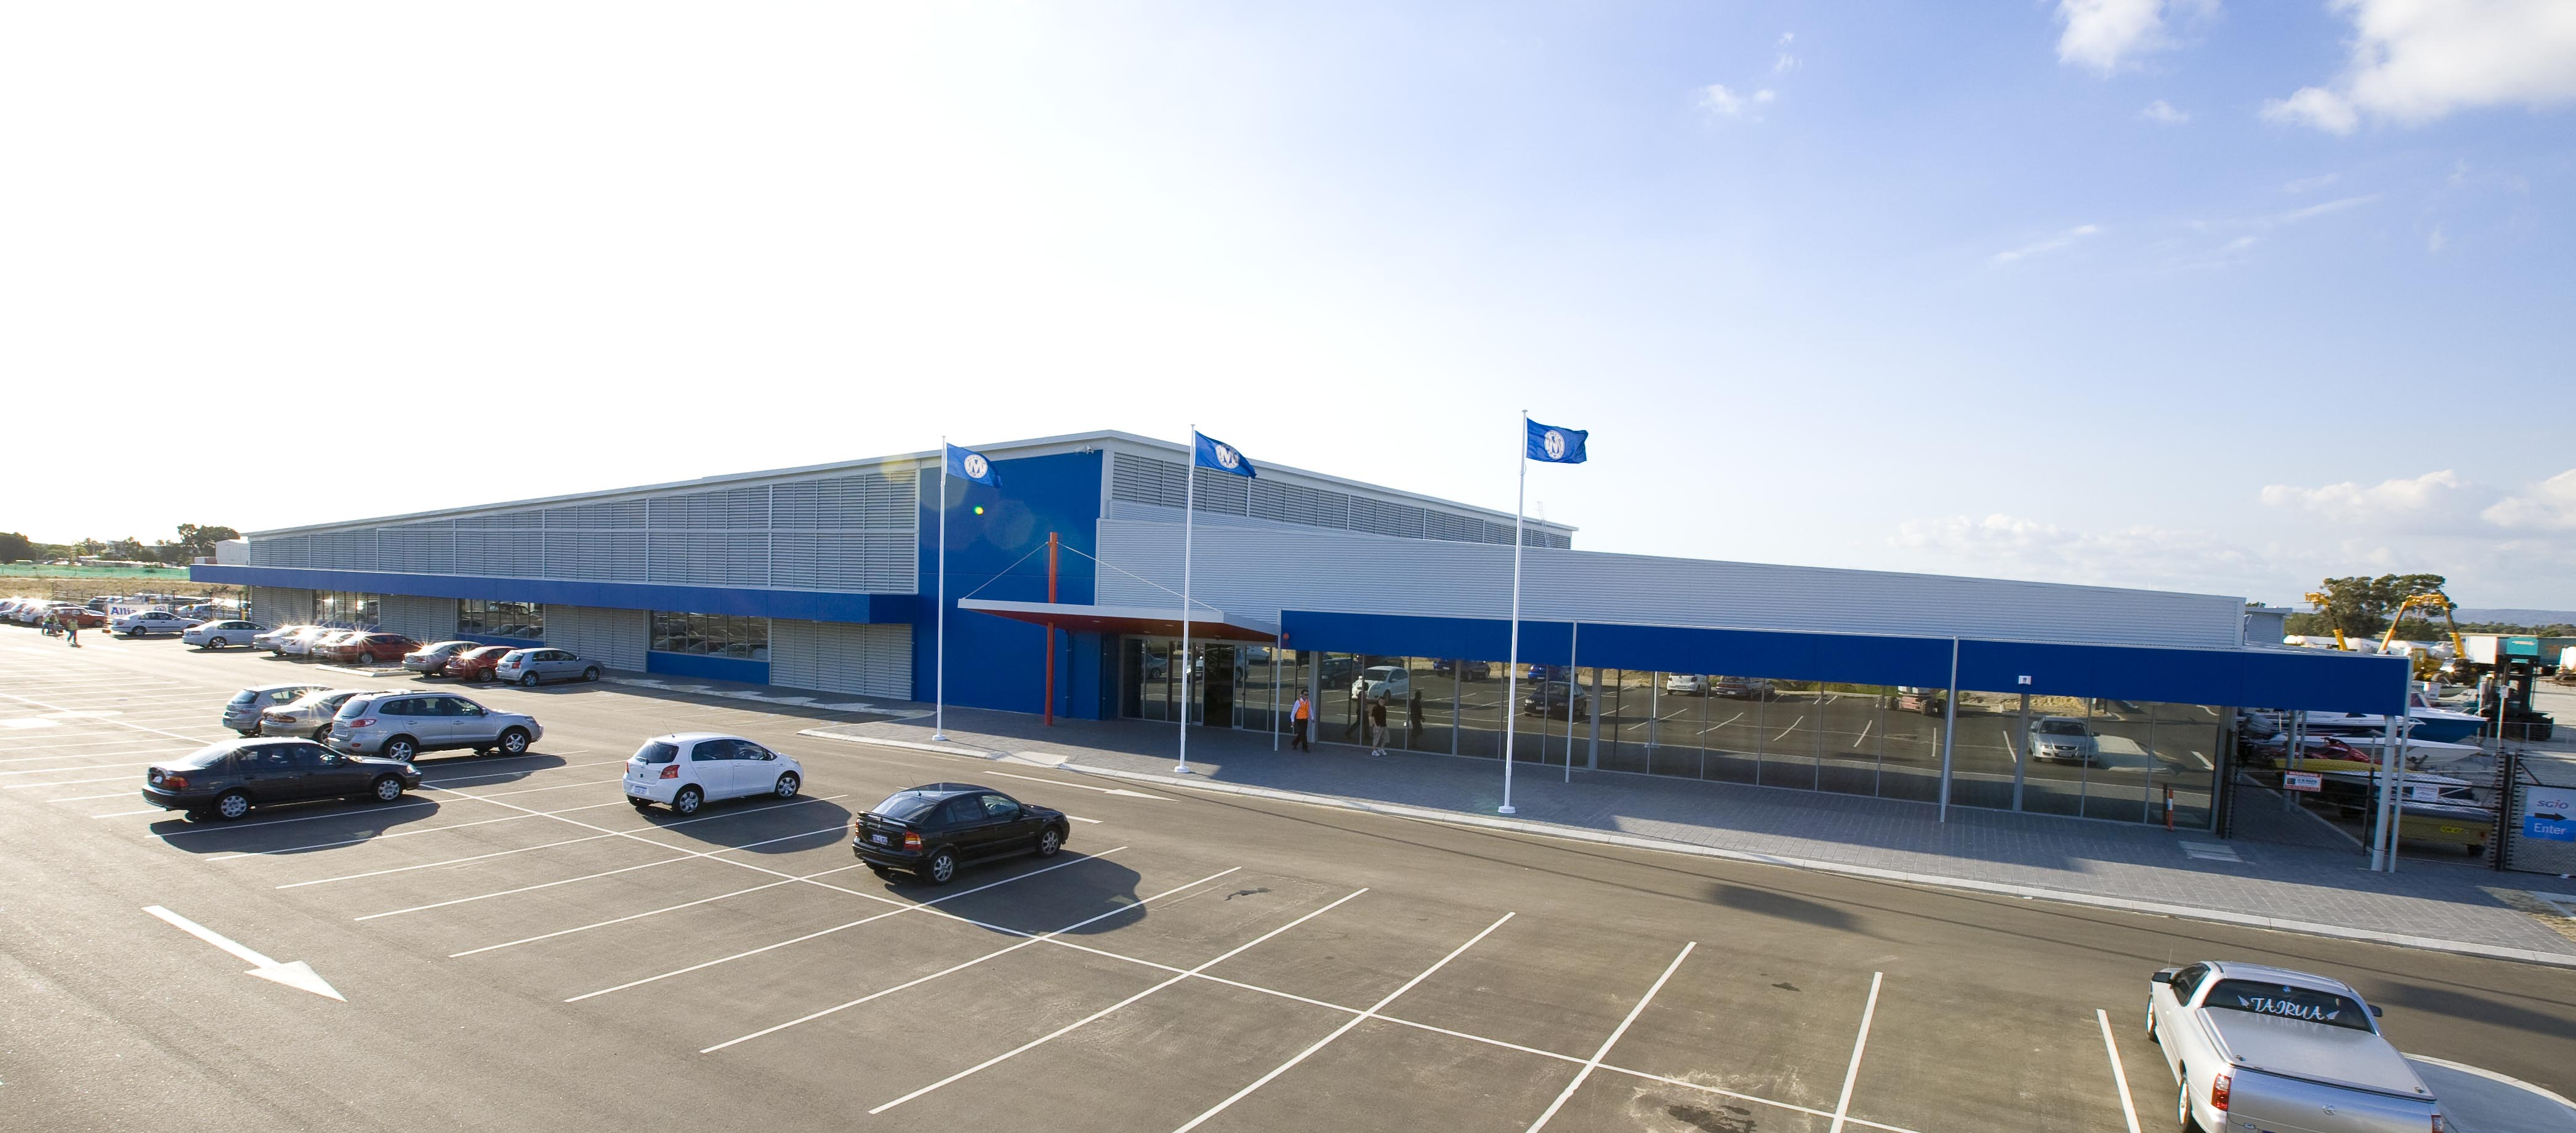 Manheim Perth